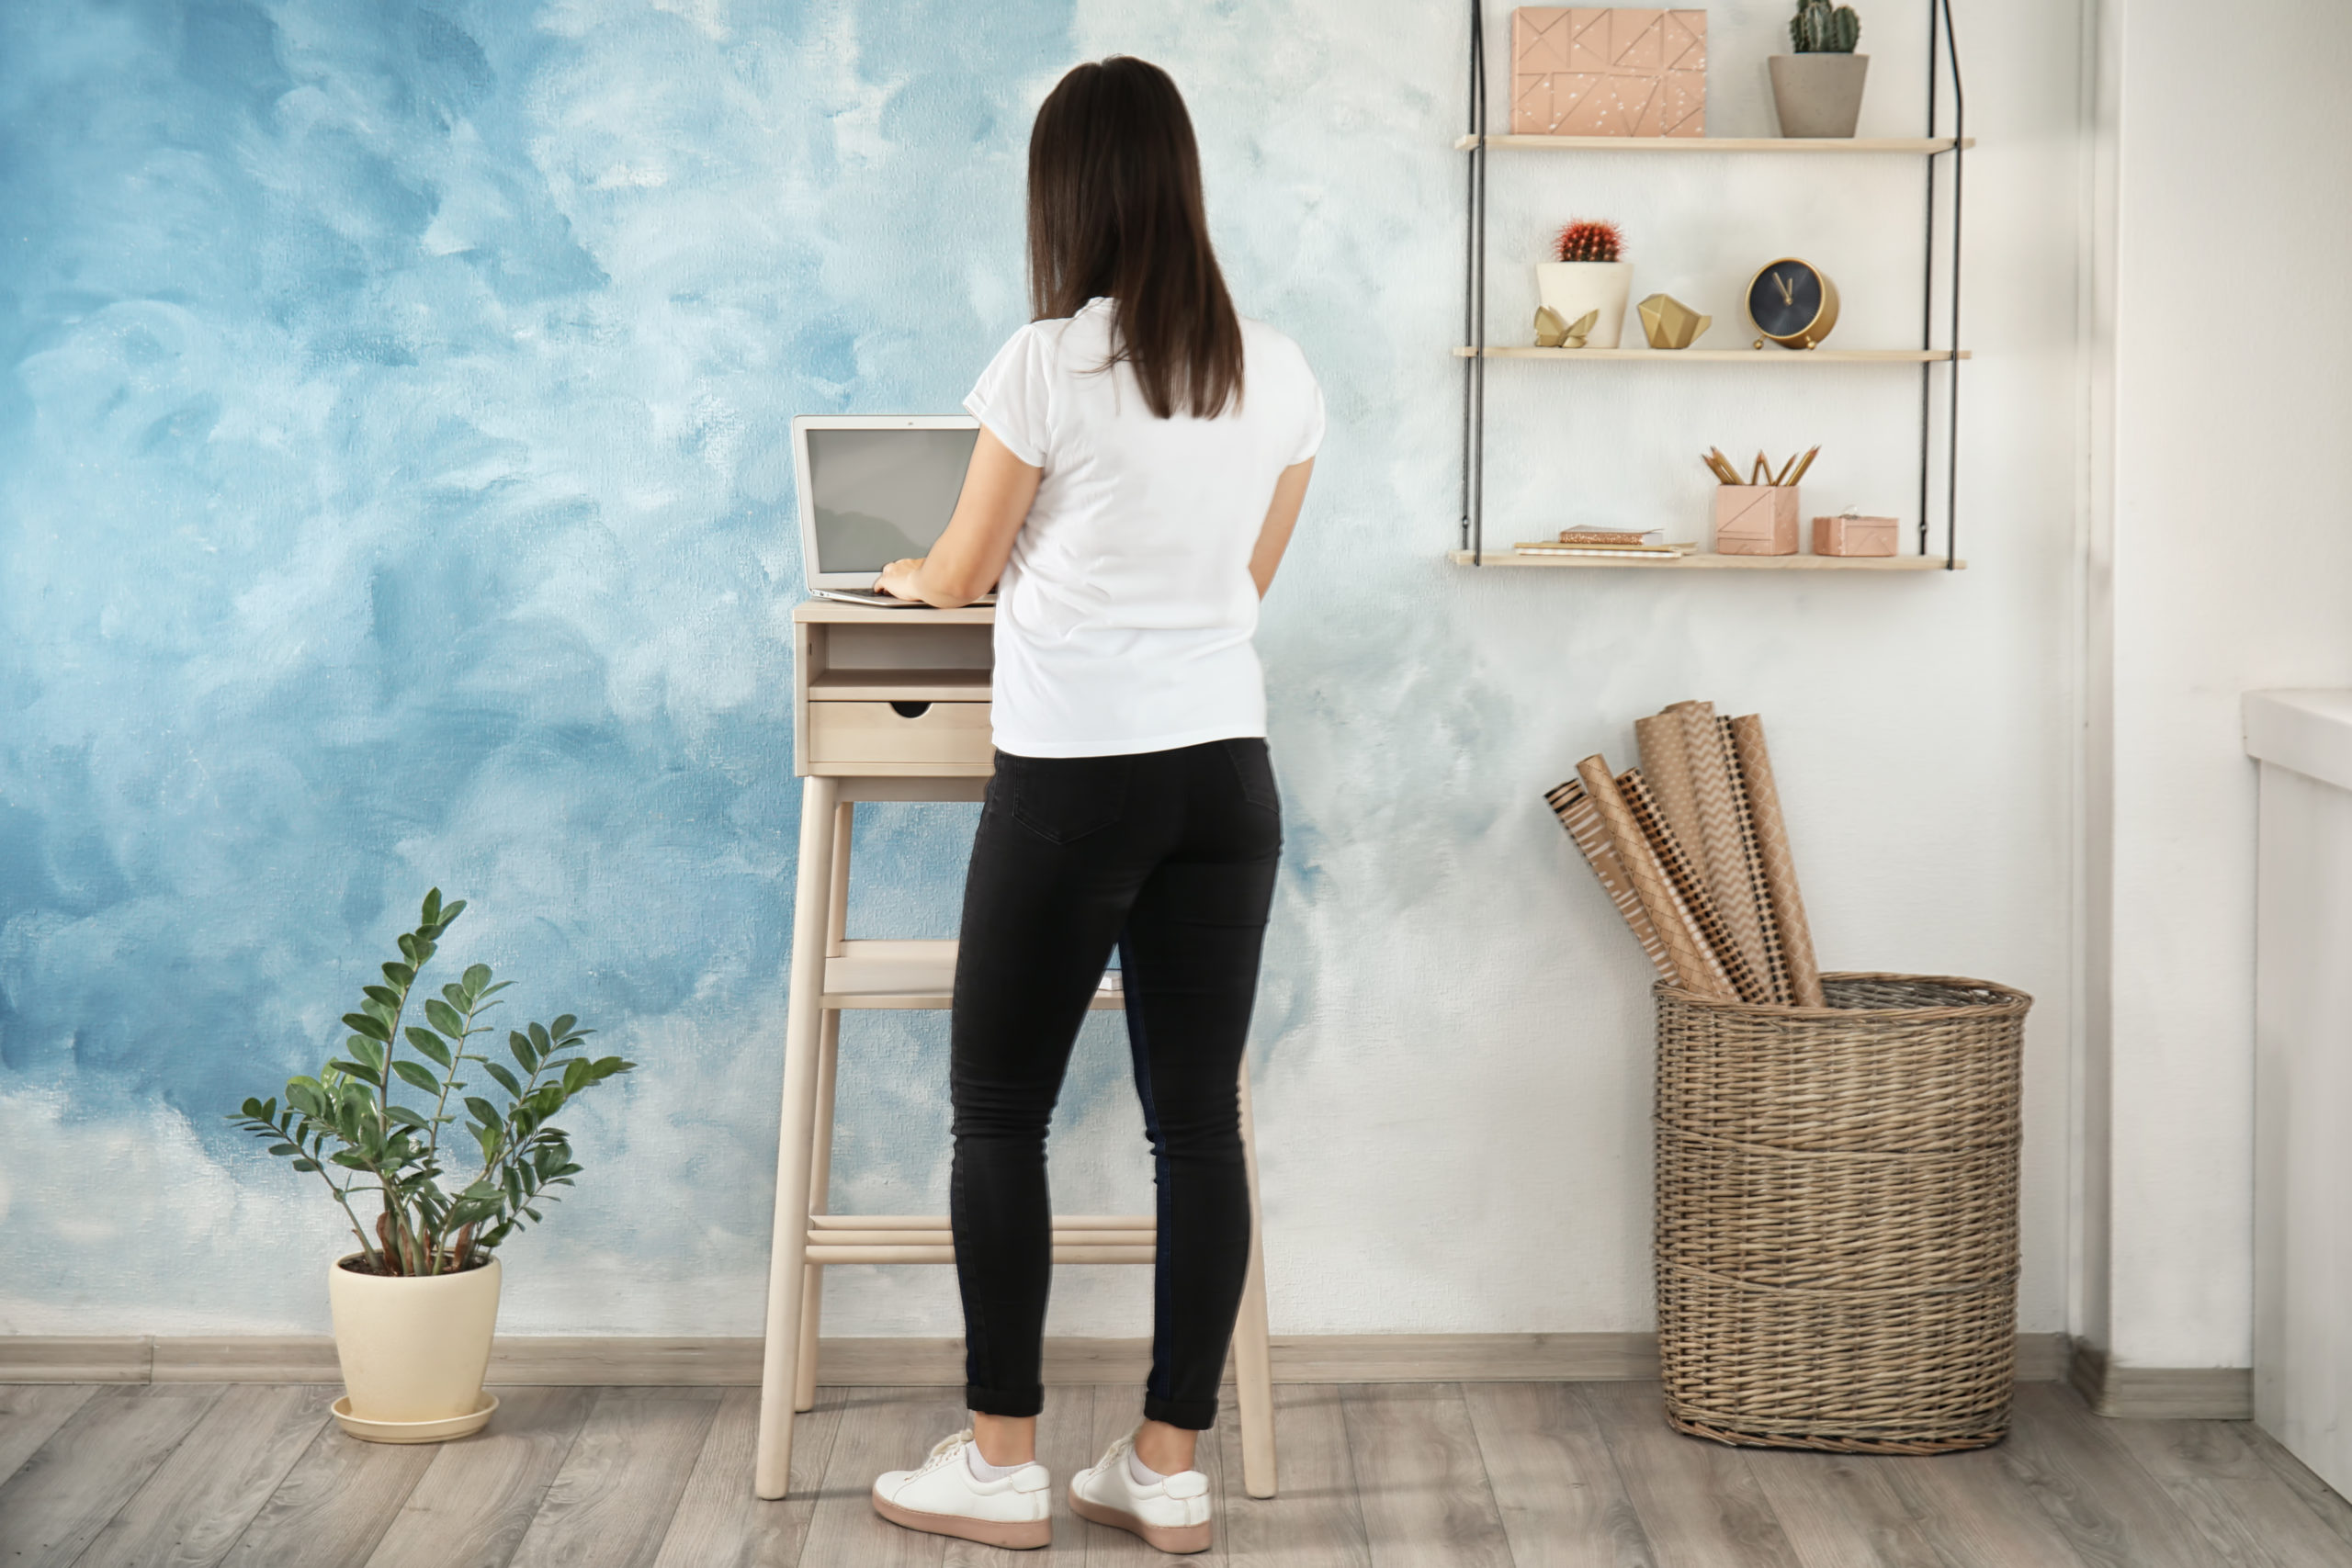 woman working at a standing desk against a blue wall